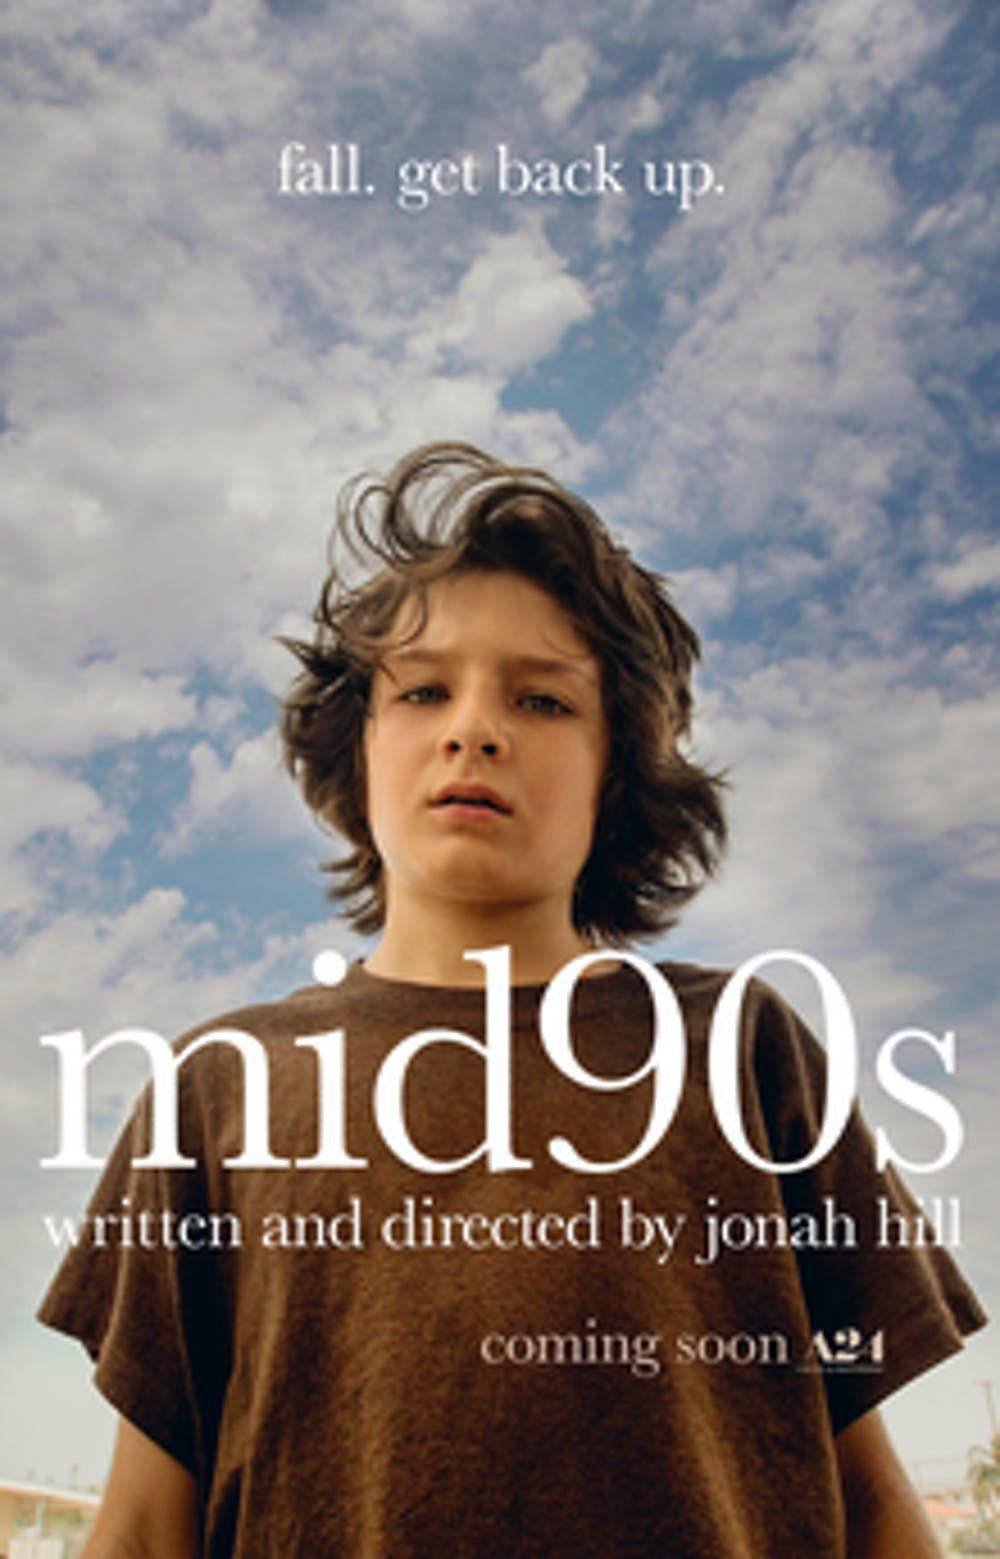 ae-mid90sreview-courtesywikimediacommons